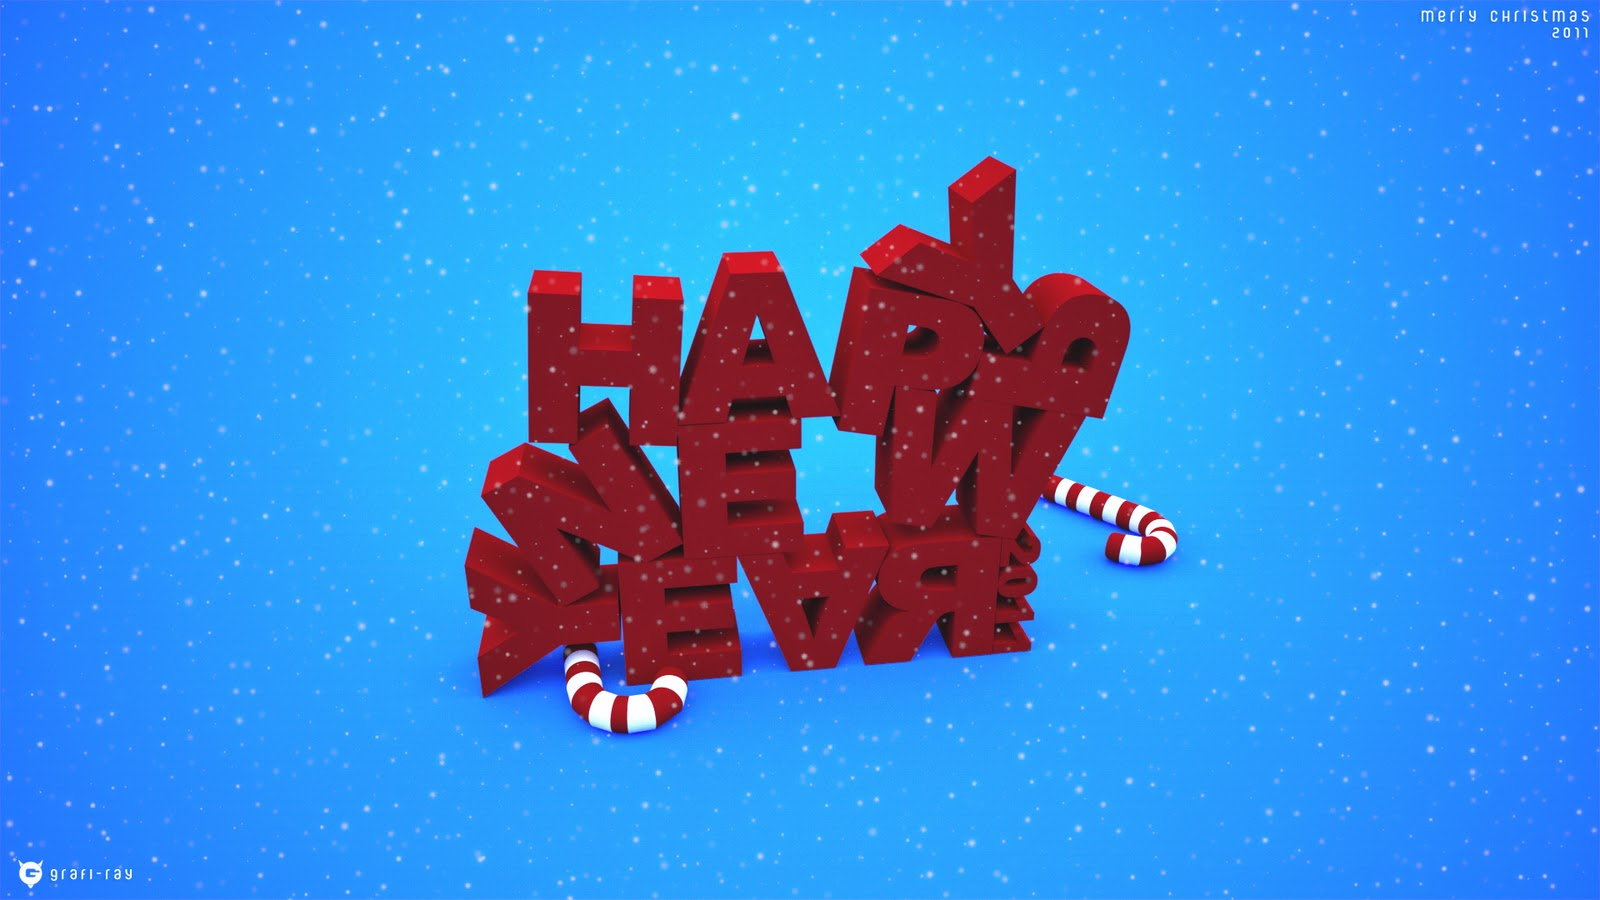 http://4.bp.blogspot.com/-L3Im6JGNvbs/Tv9VS888N5I/AAAAAAAACTg/AgAy0RMMz3U/s1600/happy_new_year_2011_wallpaper_by_grafi_ray-d3613p4.jpg